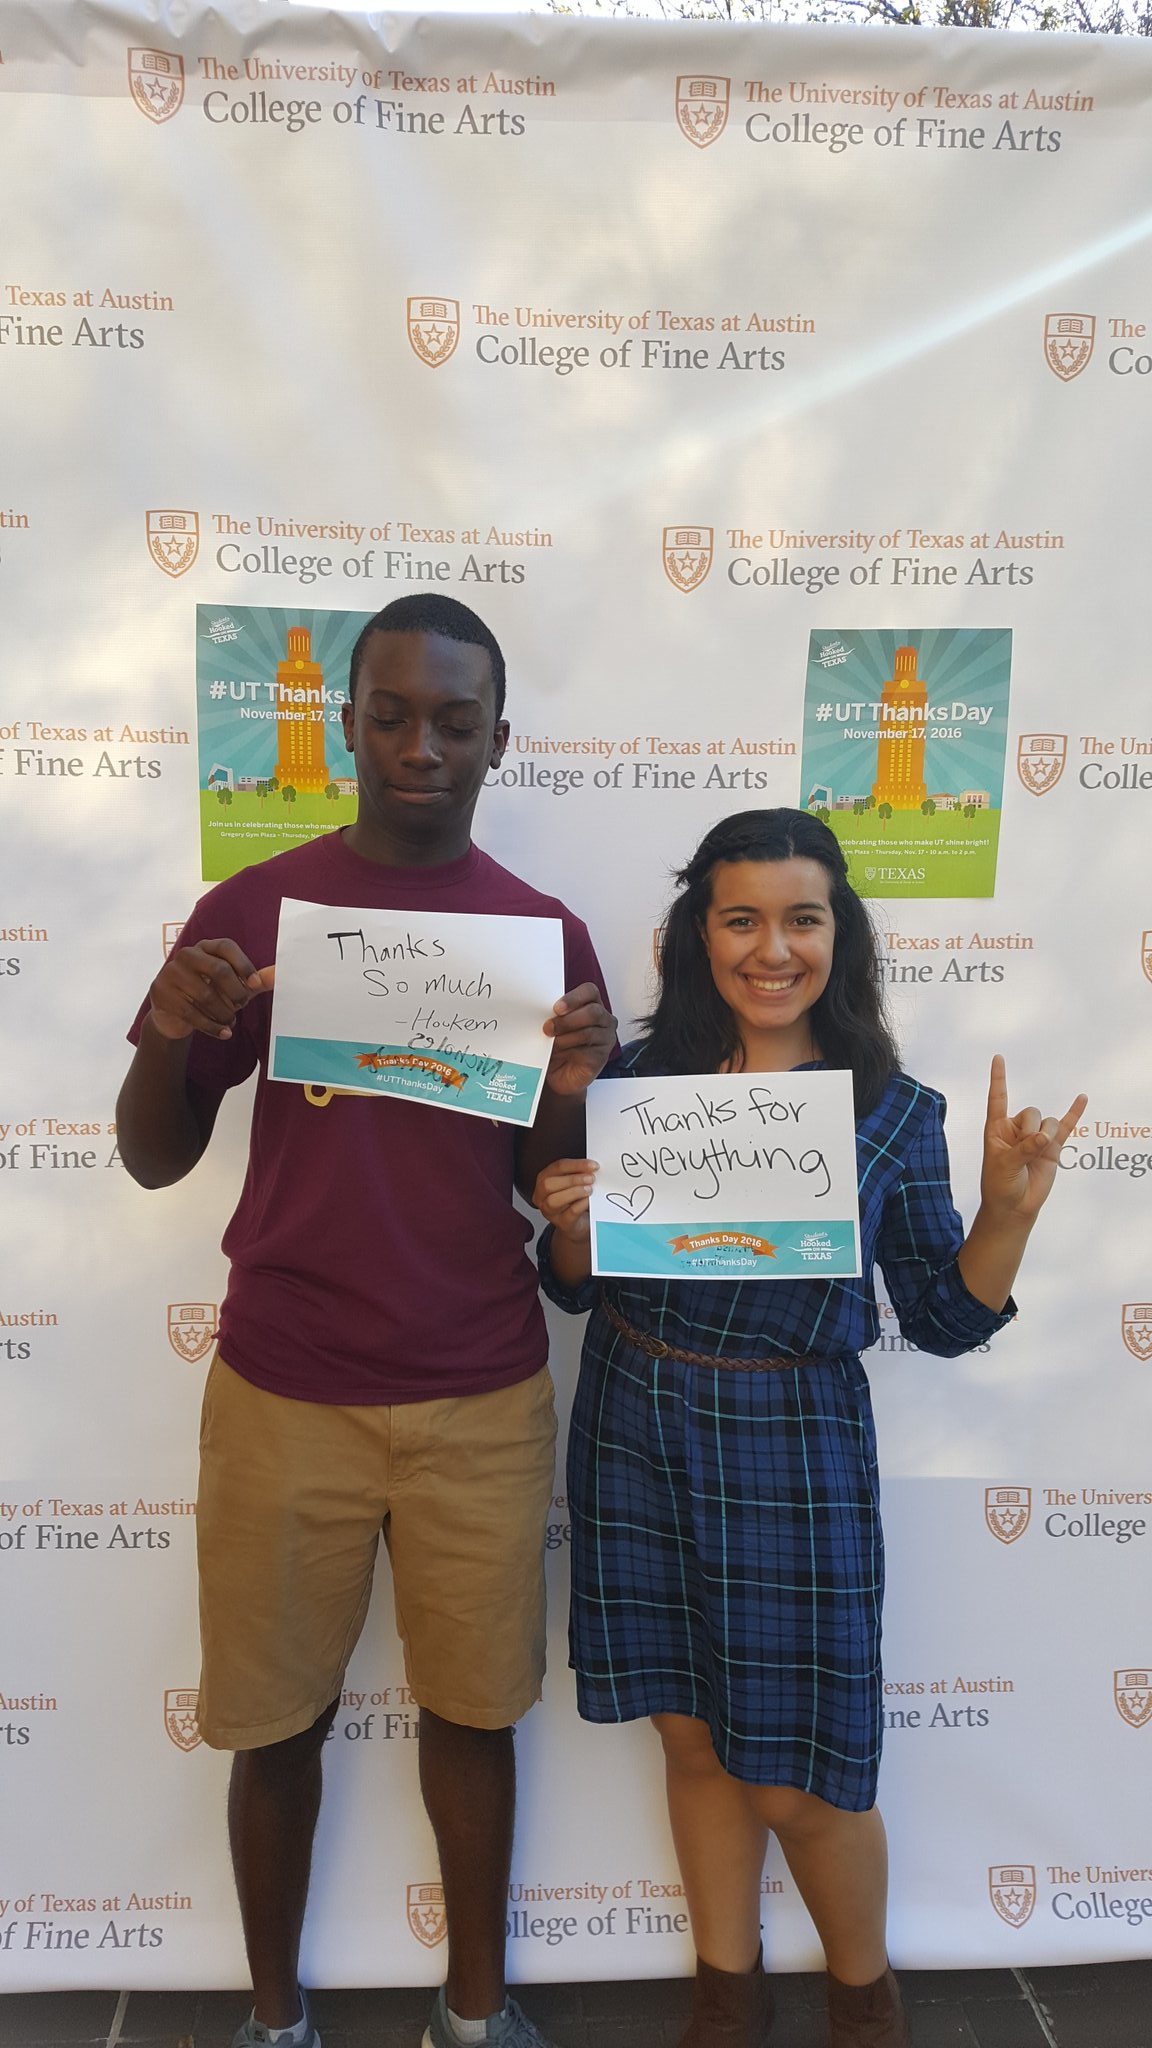 I wasn't ready for the pic but it's chill lol #UTThanksDay https://t.co/sqXhbN9yfr